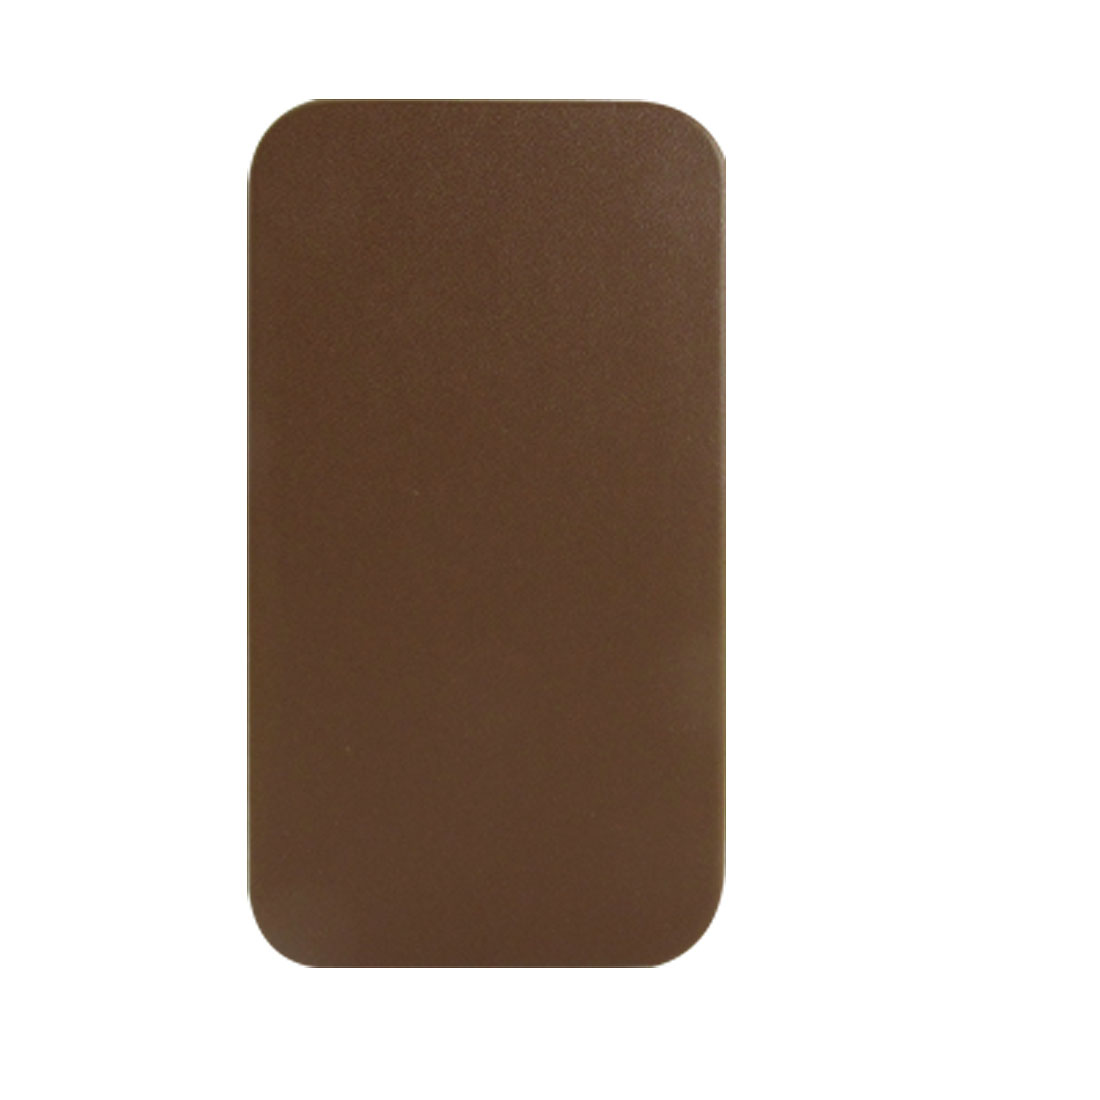 Brown Faux Leather Case Flap Vertical Pouch for iPhone 4 4G